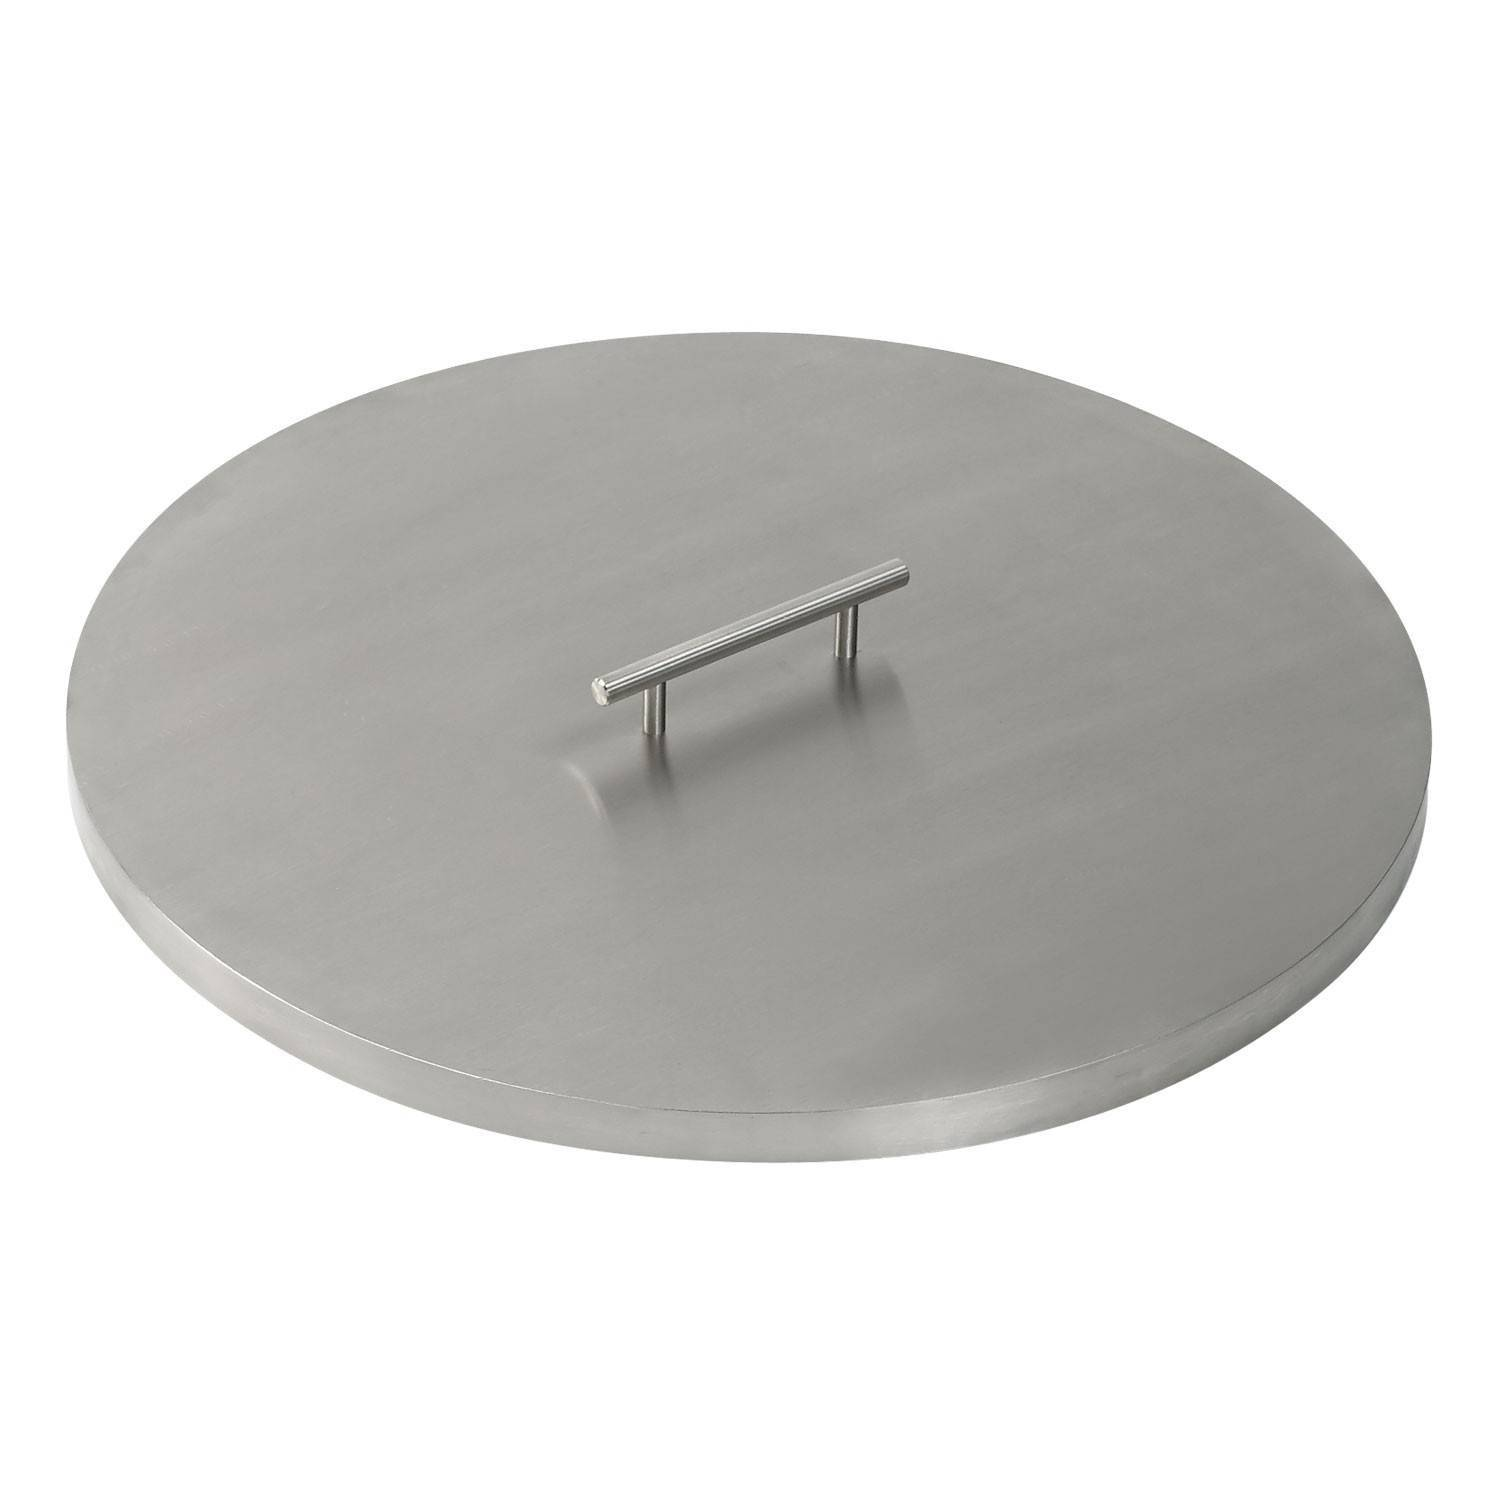 "19"" American Fireglass Stainless Steel Round Cover"